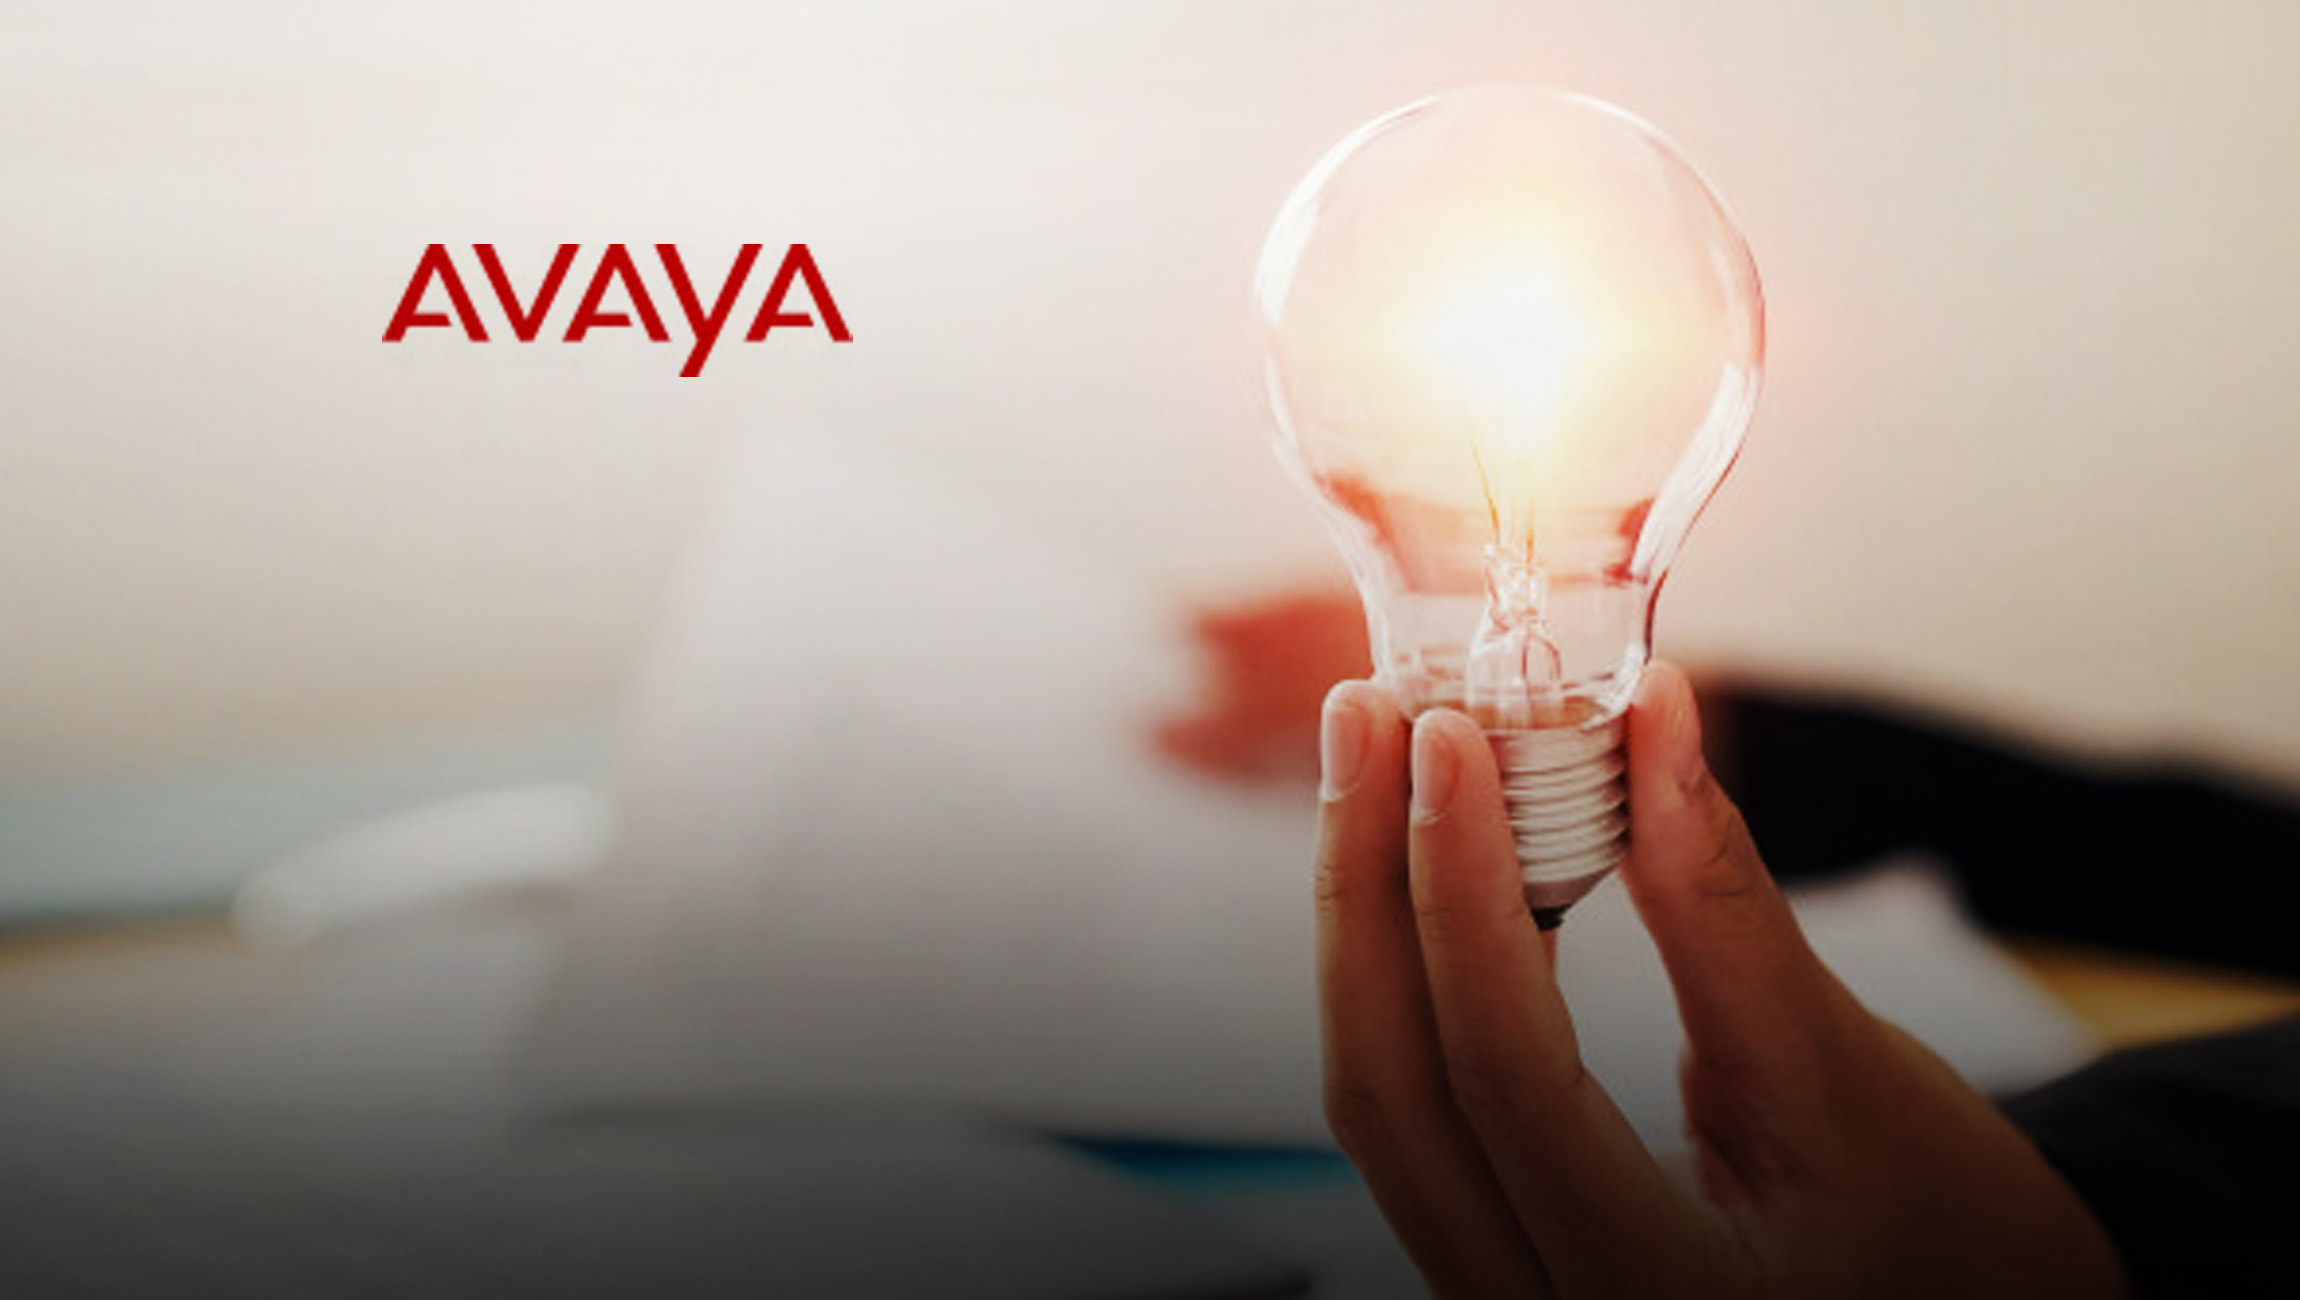 Avaya Recognized by IBM with Hybrid Cloud Excellence Award, for Communications and Collaboration Solutions That Improve Customer Experience and Efficiency